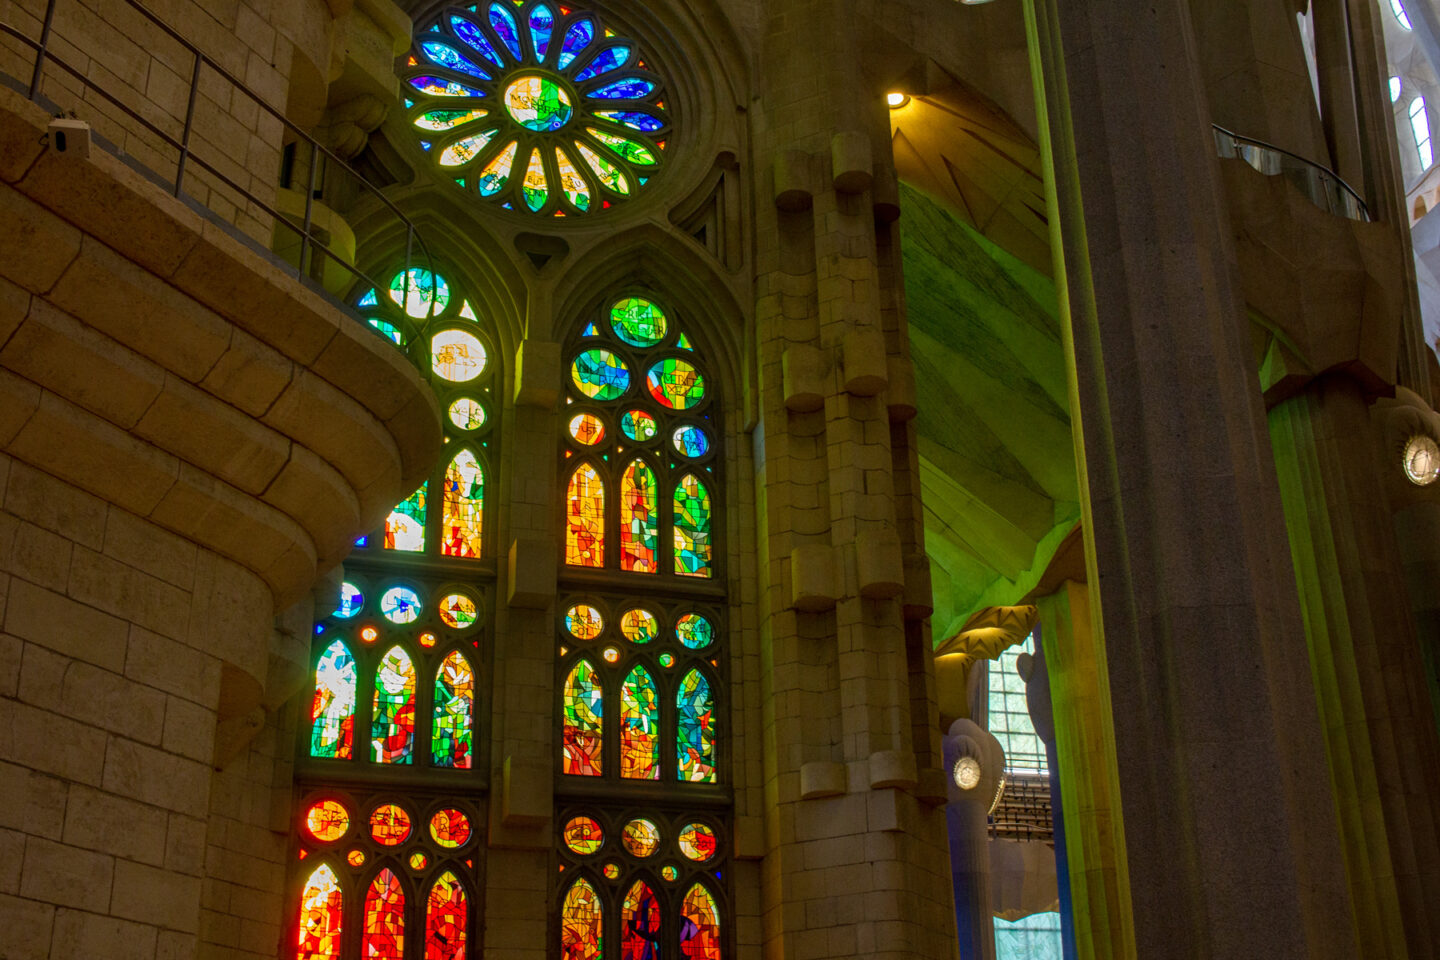 Stained glass window reflecting reds and greens.